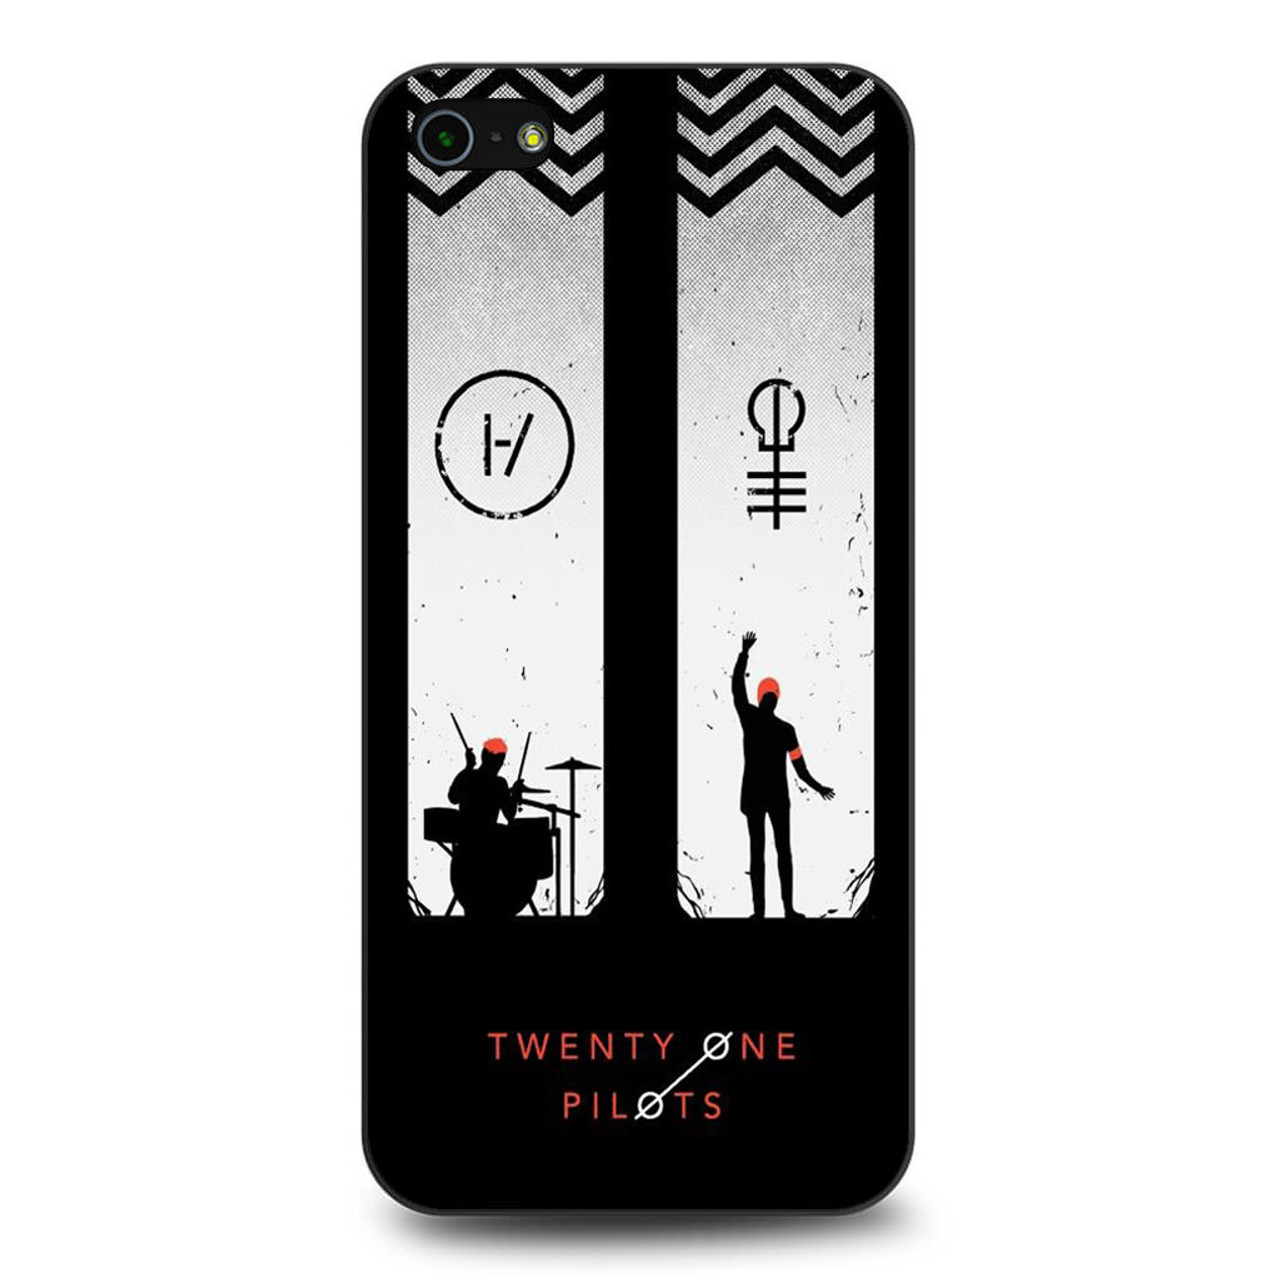 new concept b36e6 33d90 Twenty One Pilots Project iPhone 5/5S/SE Case